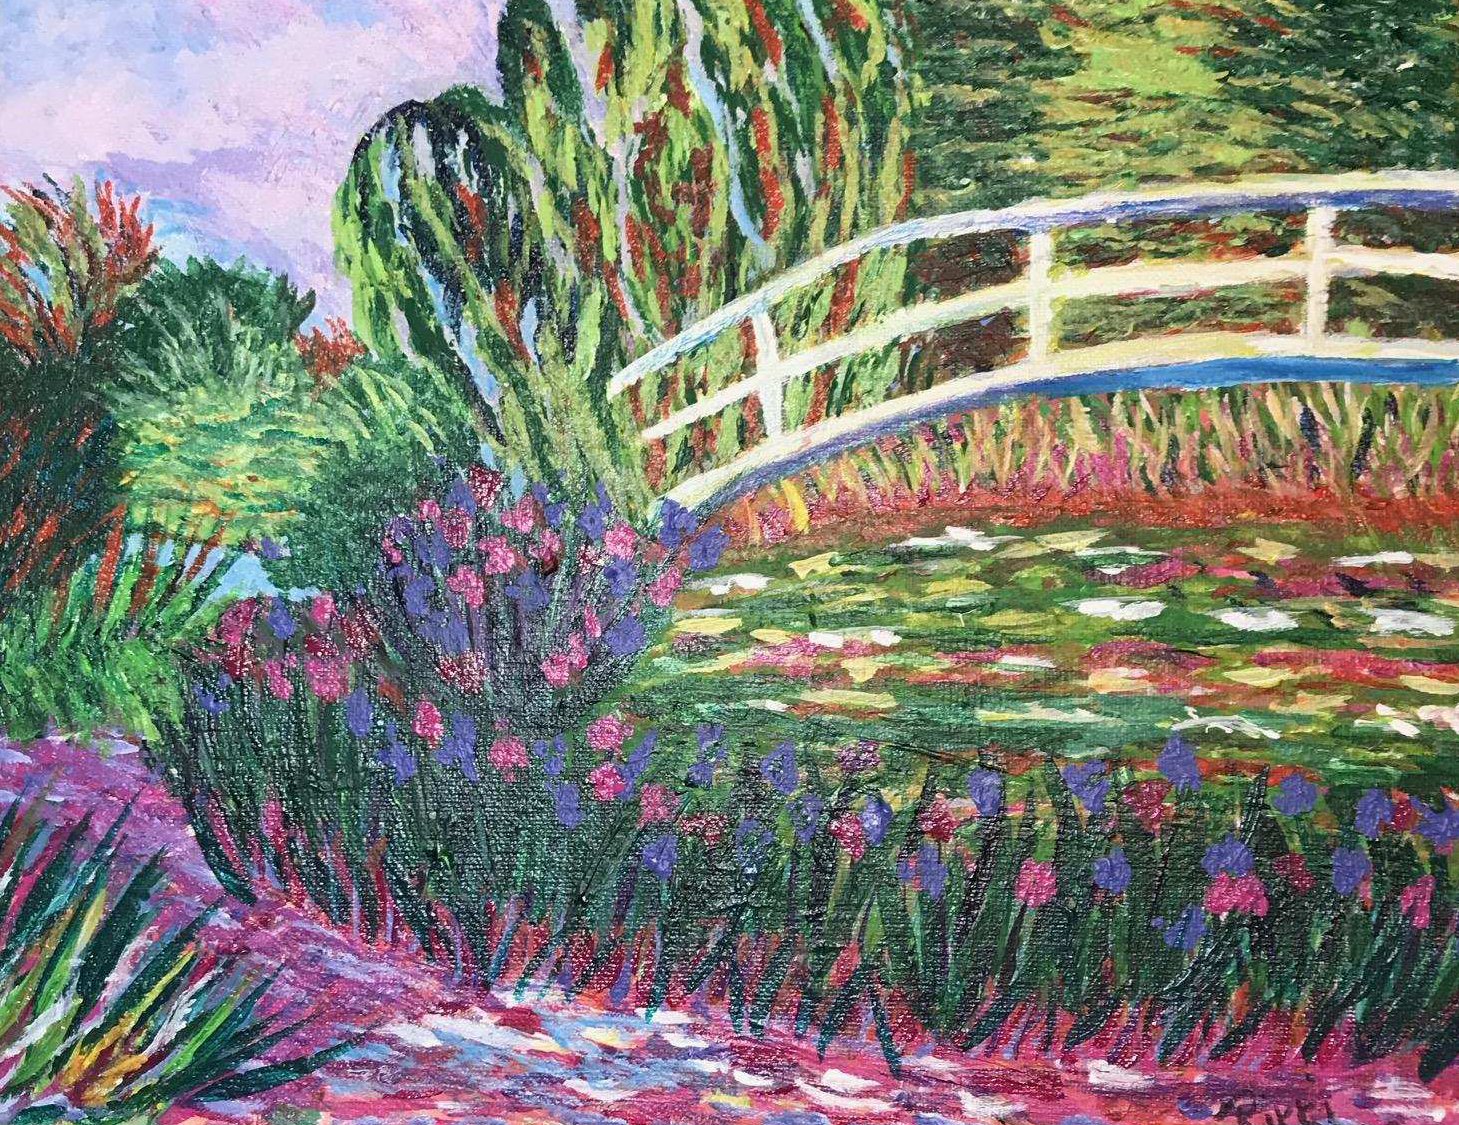 Rendition of Monet's The Japanese Footbridge by Rikki